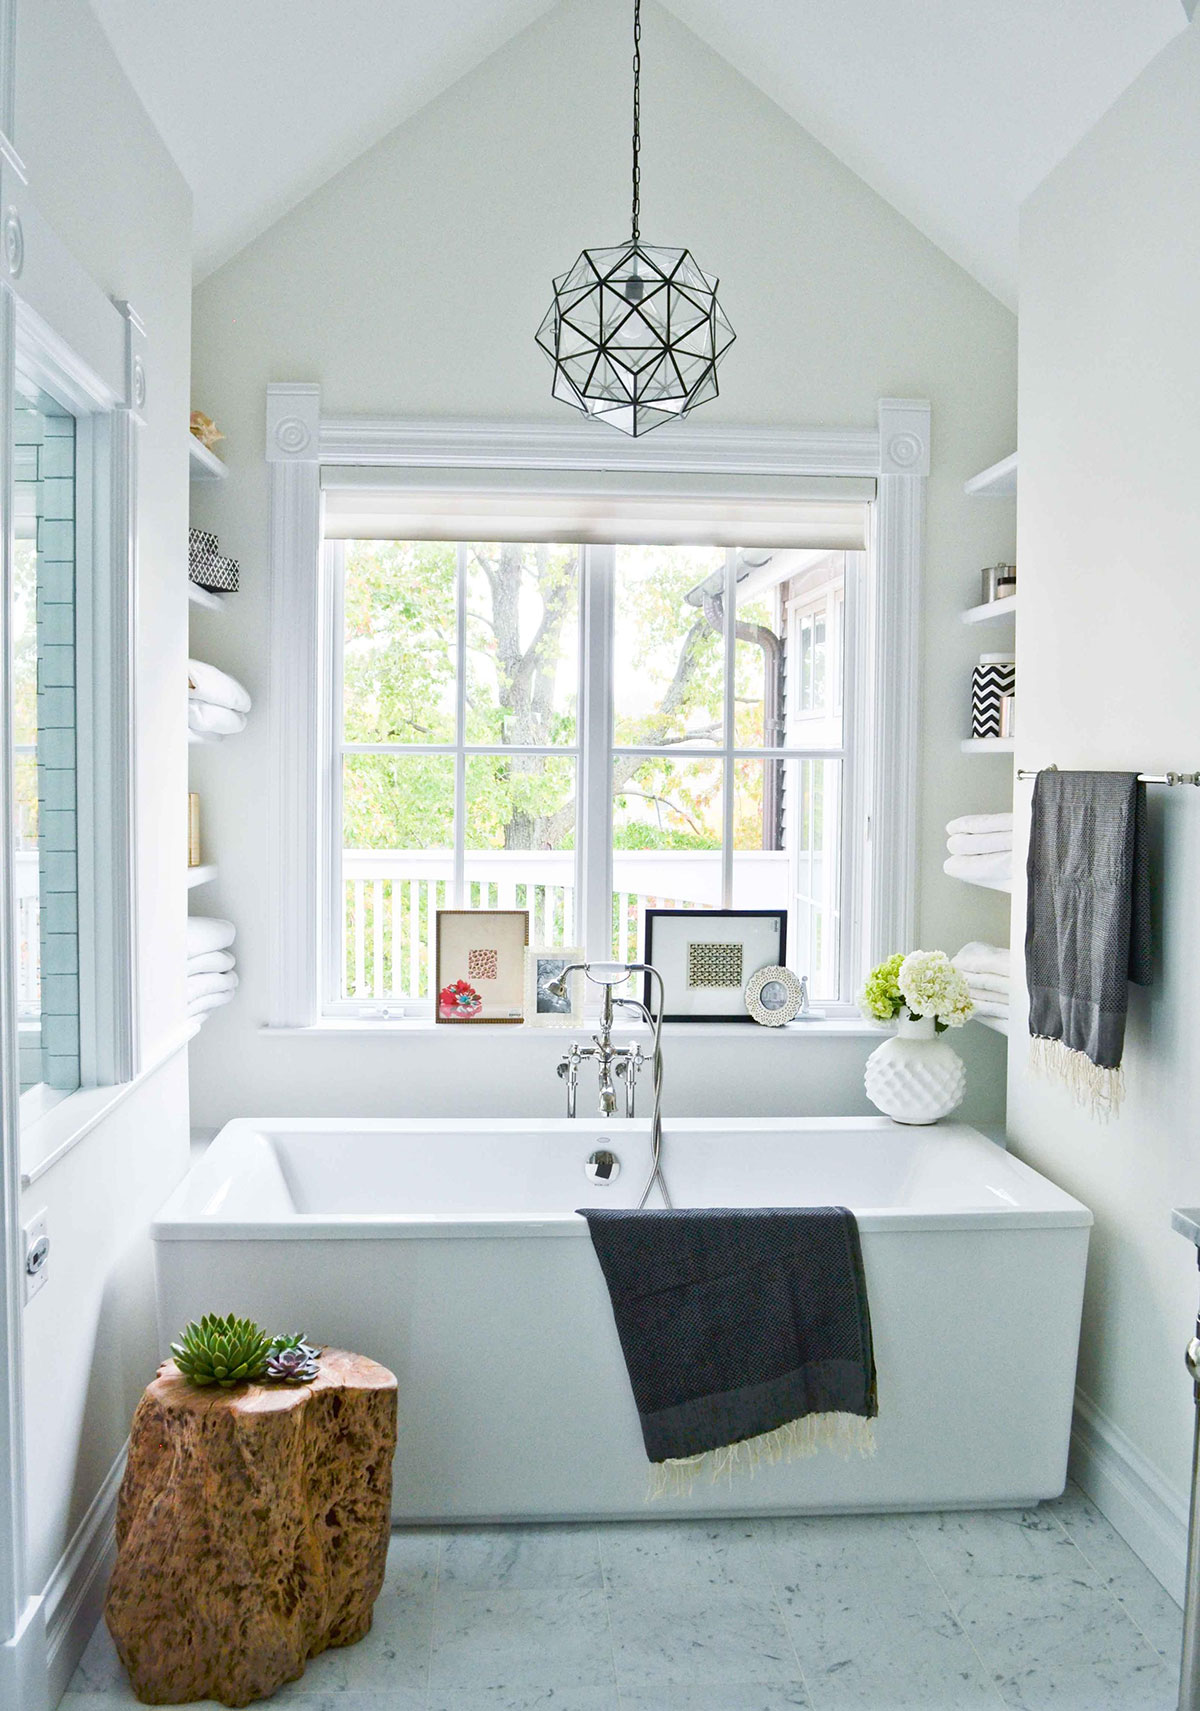 12 Things Only Professional Cleaners Know on his and hers separate bathrooms, custom bathroom designs, her bath designs, his and her tattoo designs, his and hers bathroom plans, traditional bathroom designs, cabin bathroom designs, candice olson master bedroom designs, medium bathroom designs, basement bathroom shower designs, his and hers bath plans, his and hers bathroom modern, corner shower small bathroom designs, basement small 3 4 bathroom designs, elegant bathroom designs, his and hers closet designs, his and hers bath towels, his and hers bathroom vanity, master bathroom designs,